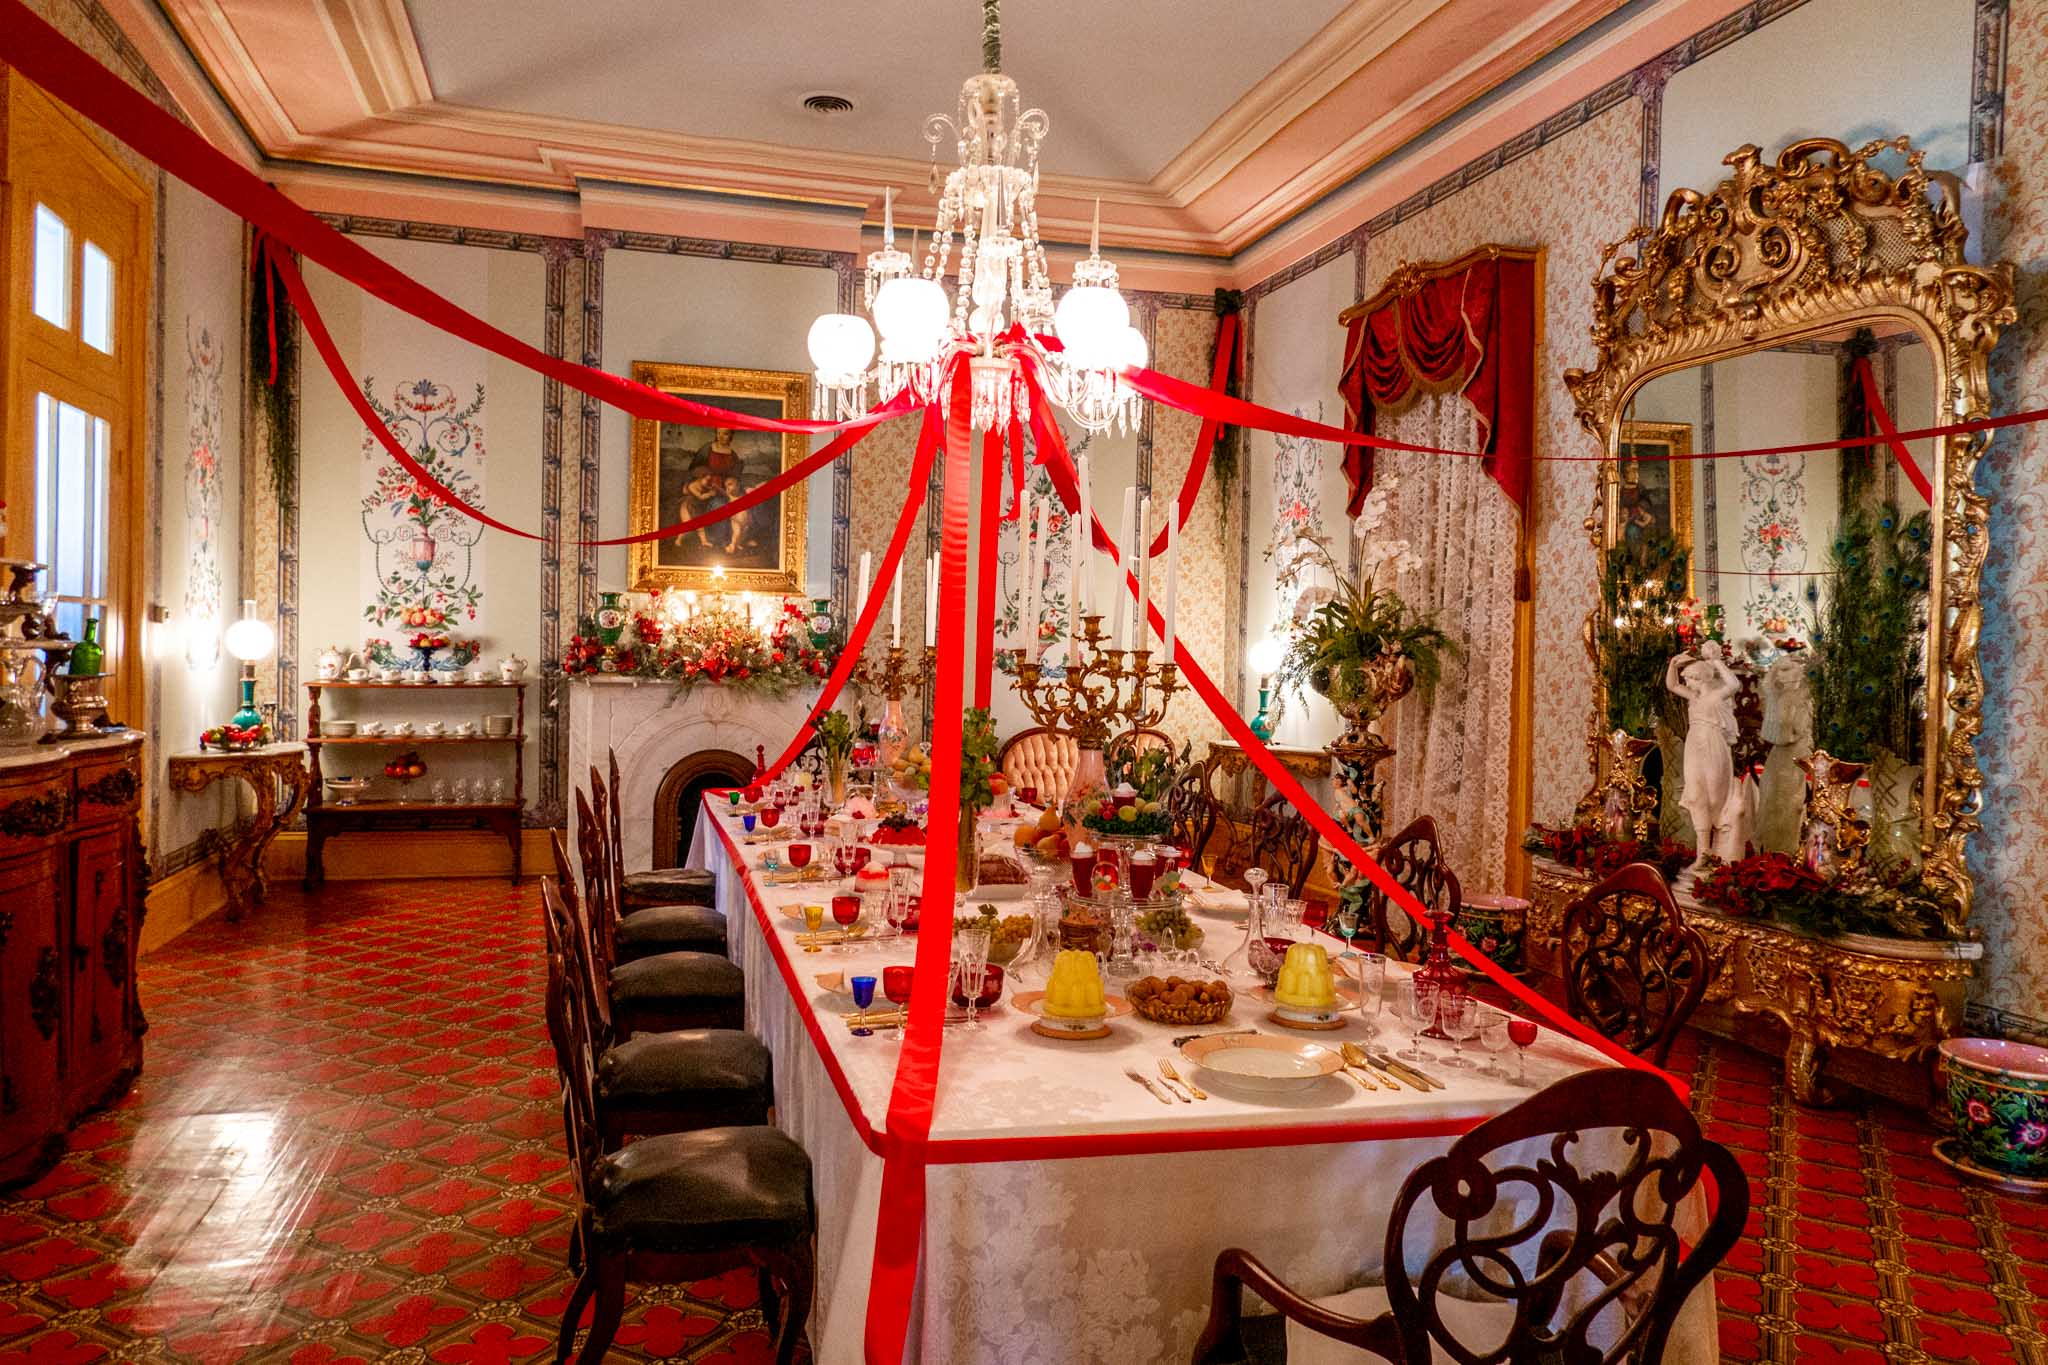 Formal dining room with set table and Christmas decorations